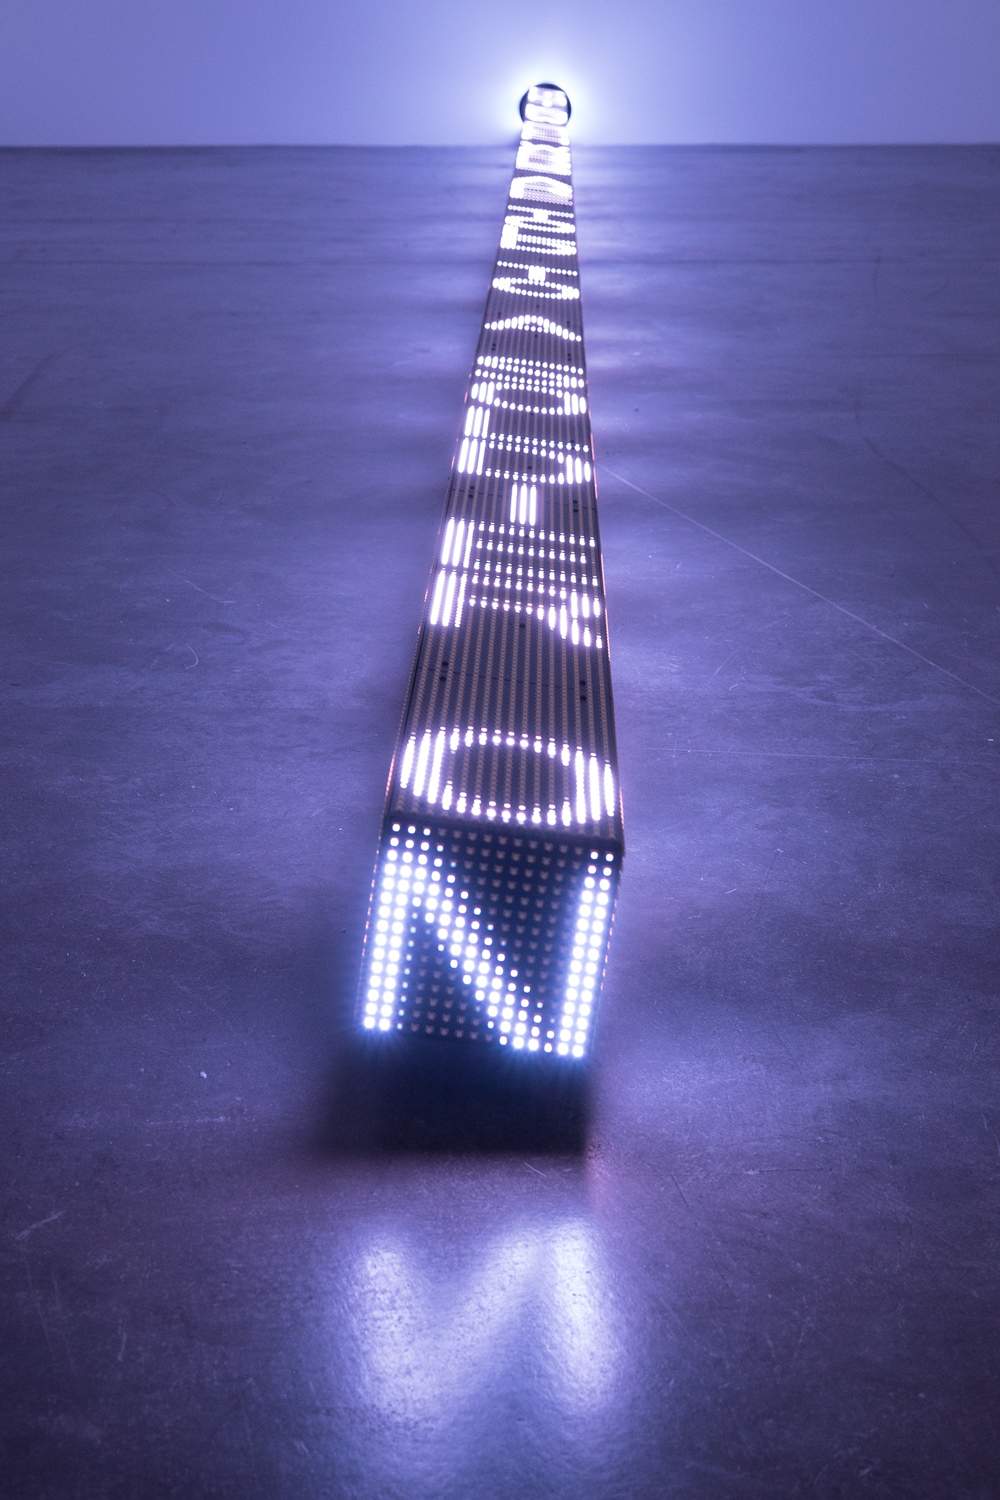 Jenny Holzer,  Ram , 2016. © 2016 Jenny Holzer, member Artists Rights Society (ARS), NY Photo: Collin LaFleche. Courtesy of the artist.